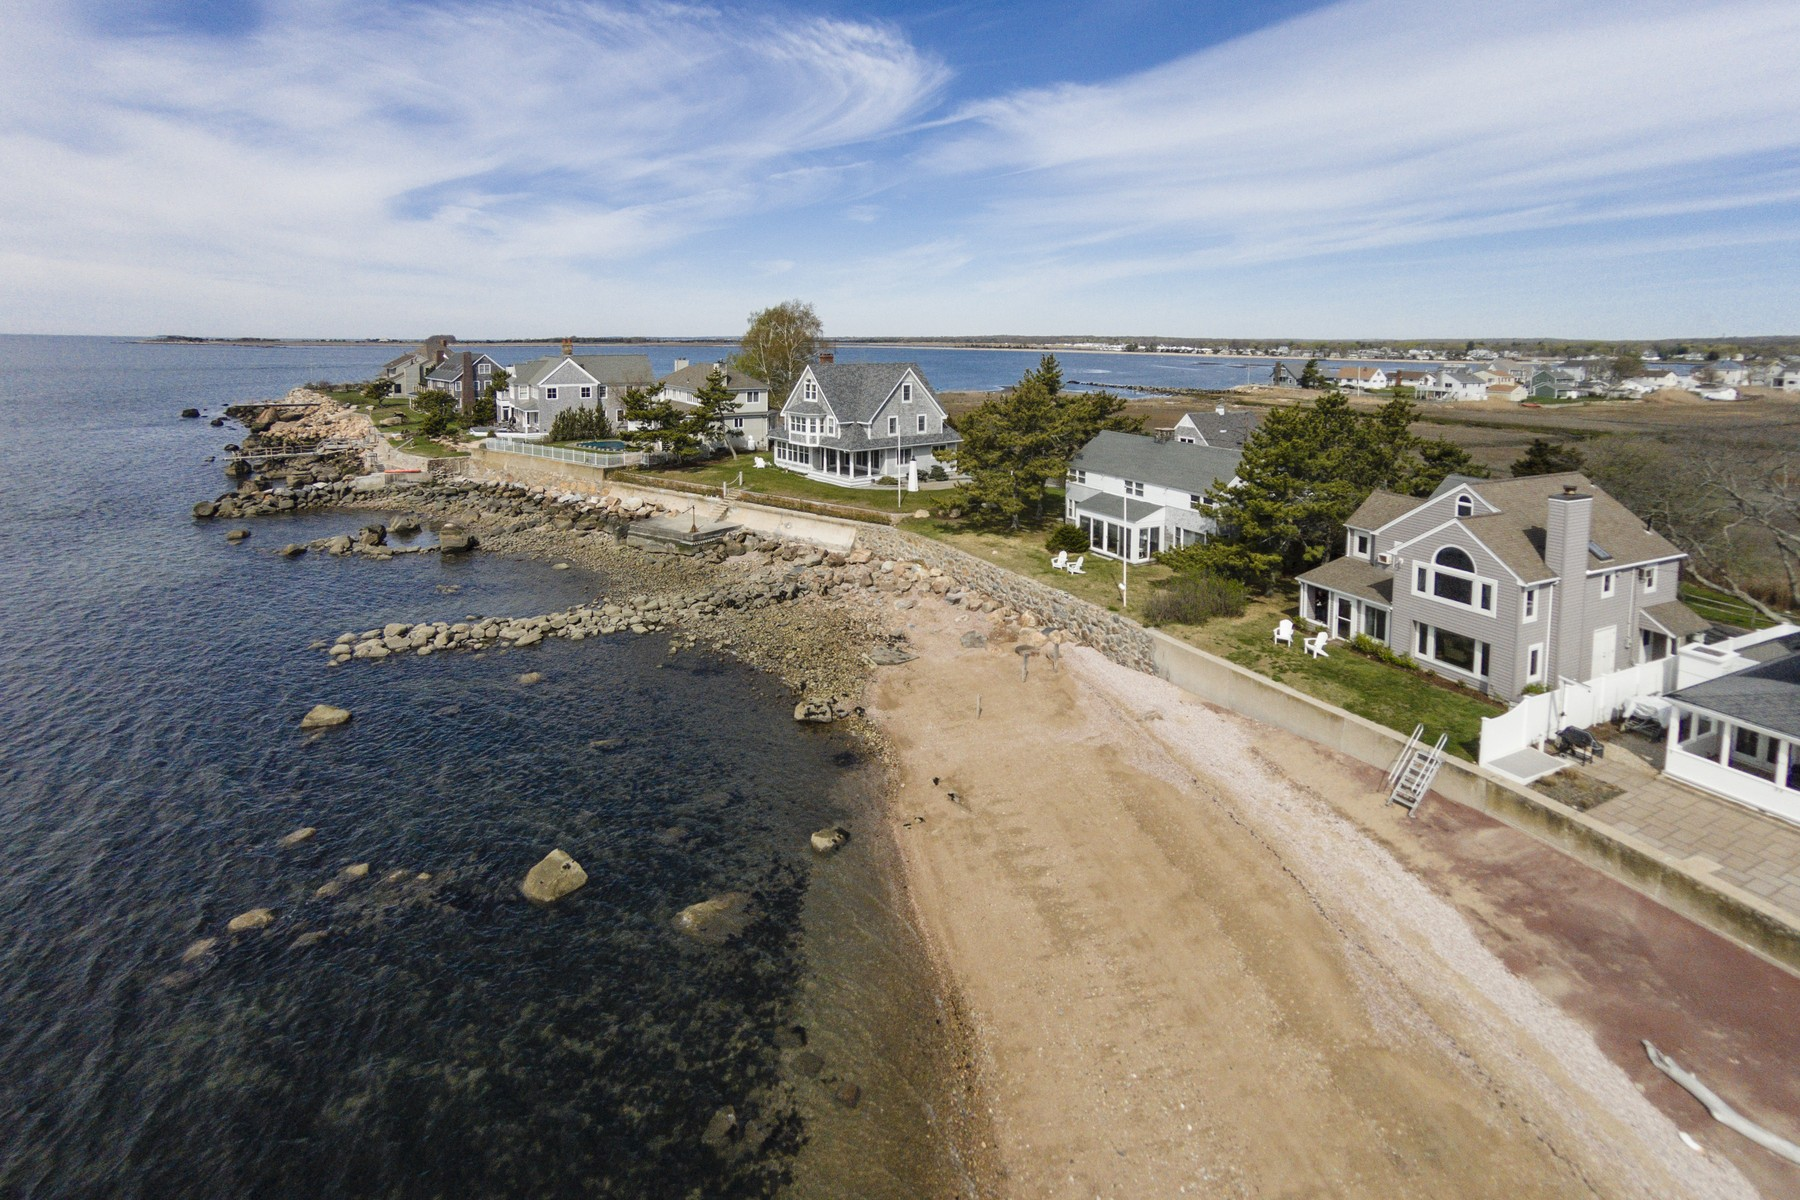 Maison unifamiliale pour l Vente à Direct Waterfront! Contemporary Colonial 49 Hammock Road Clinton, Connecticut 06413 États-Unis